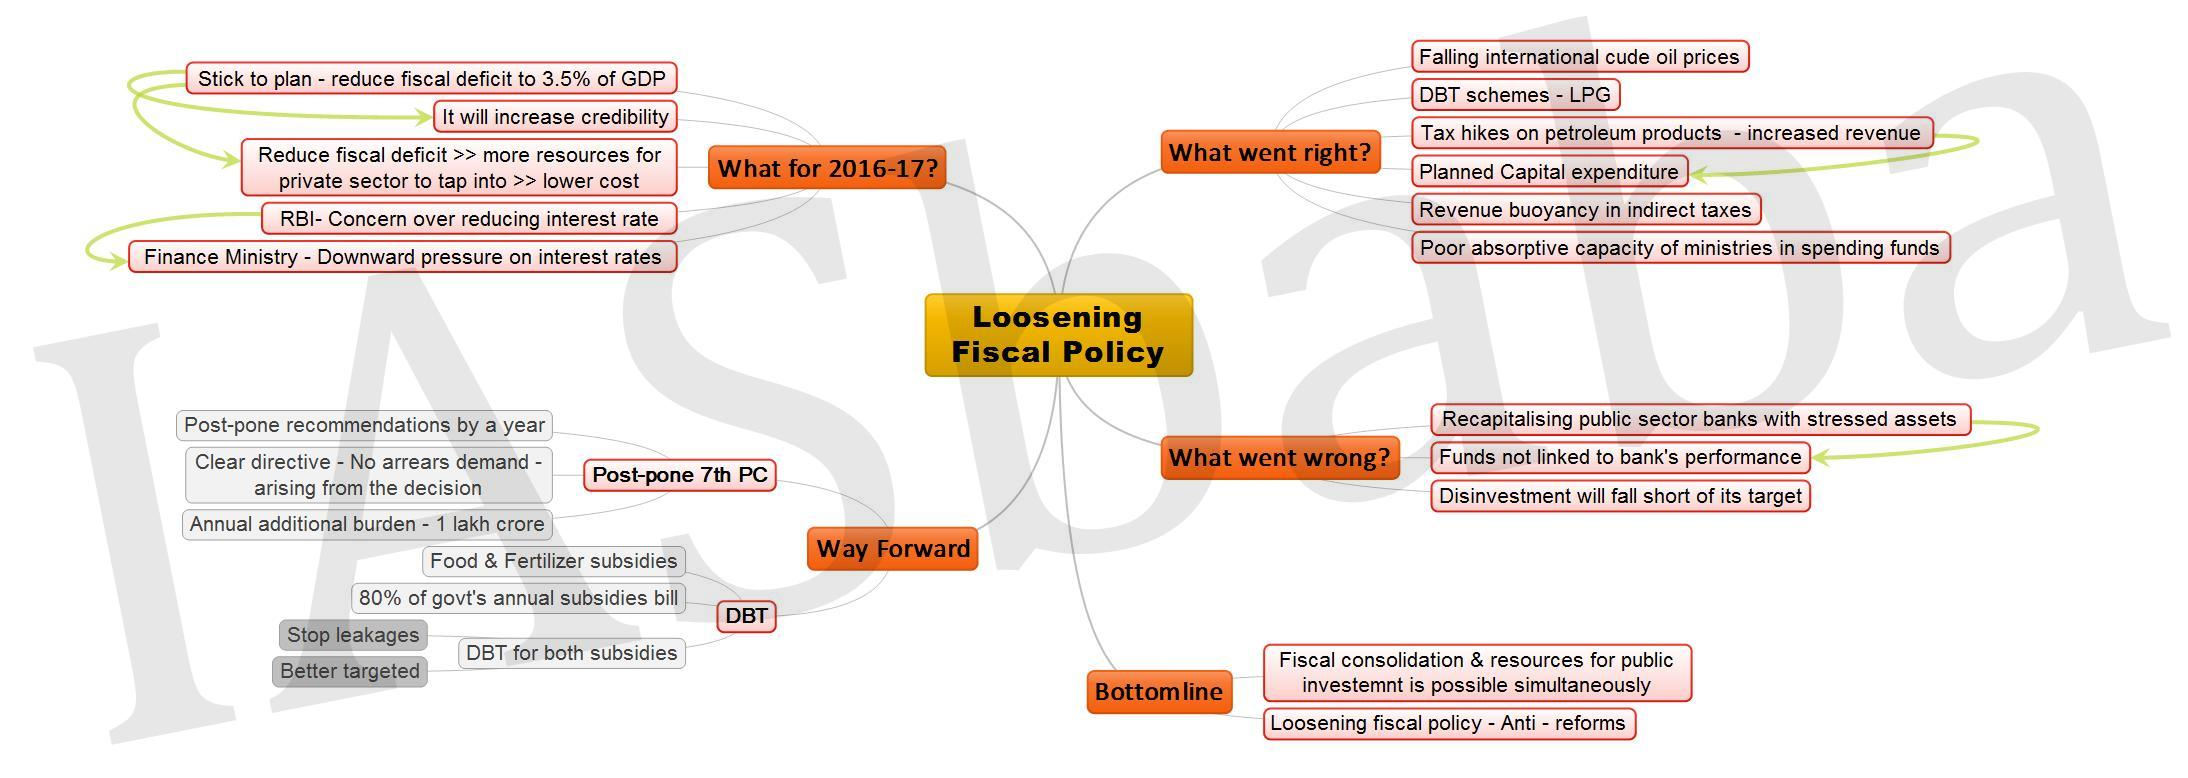 Loosening Fiscal Policy JPEG